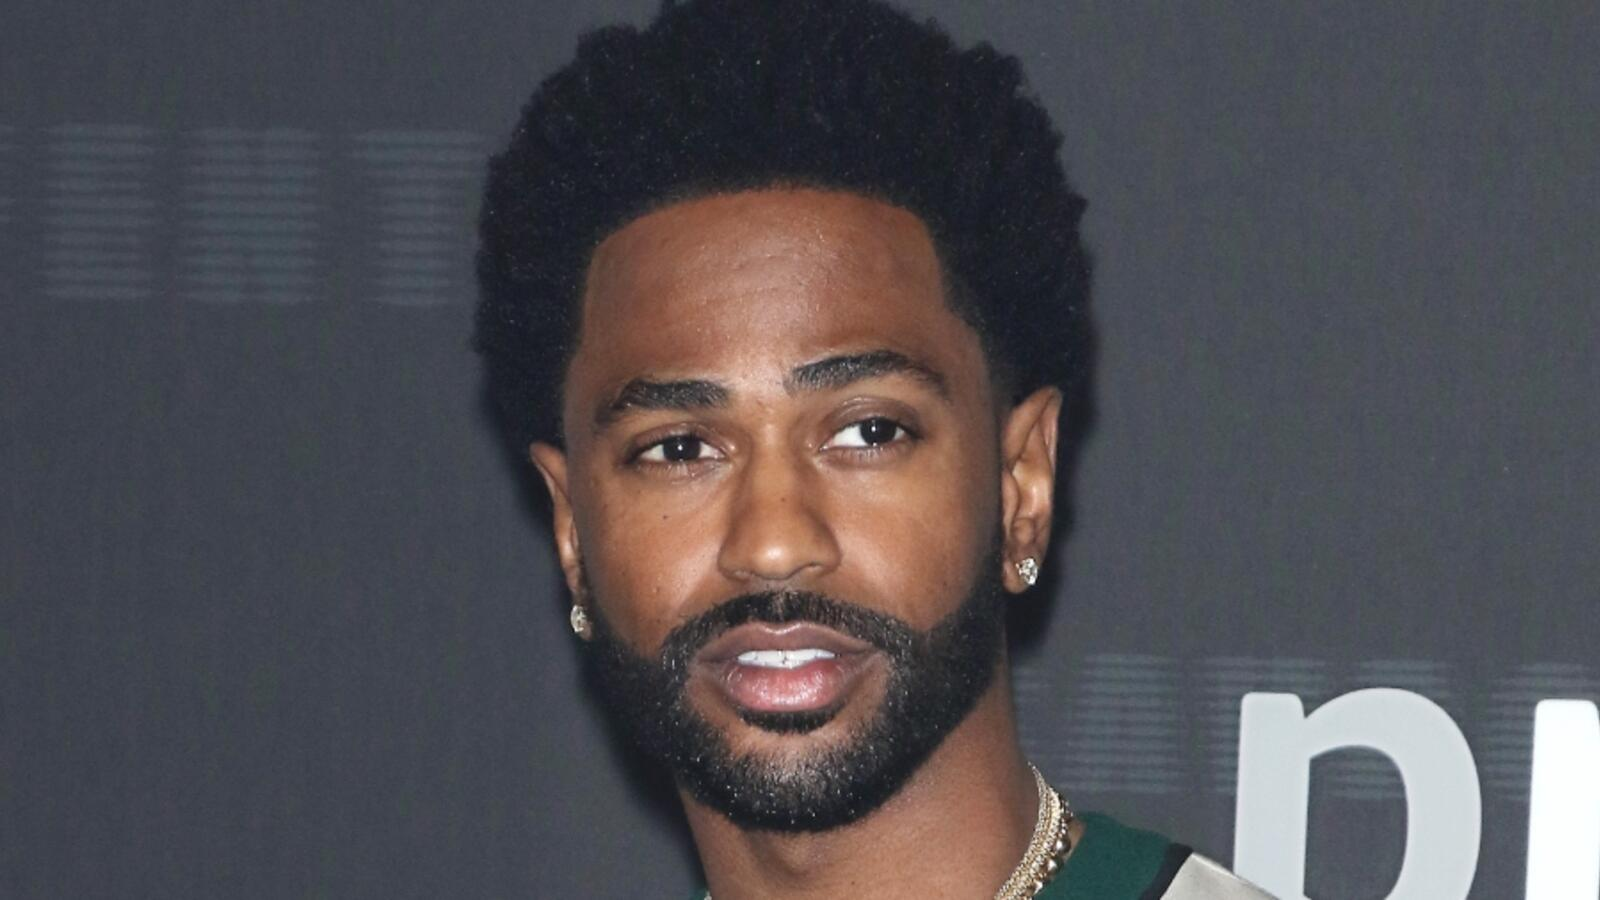 Big Sean Poses With 65,000 Bees In 'What A Life' Visual